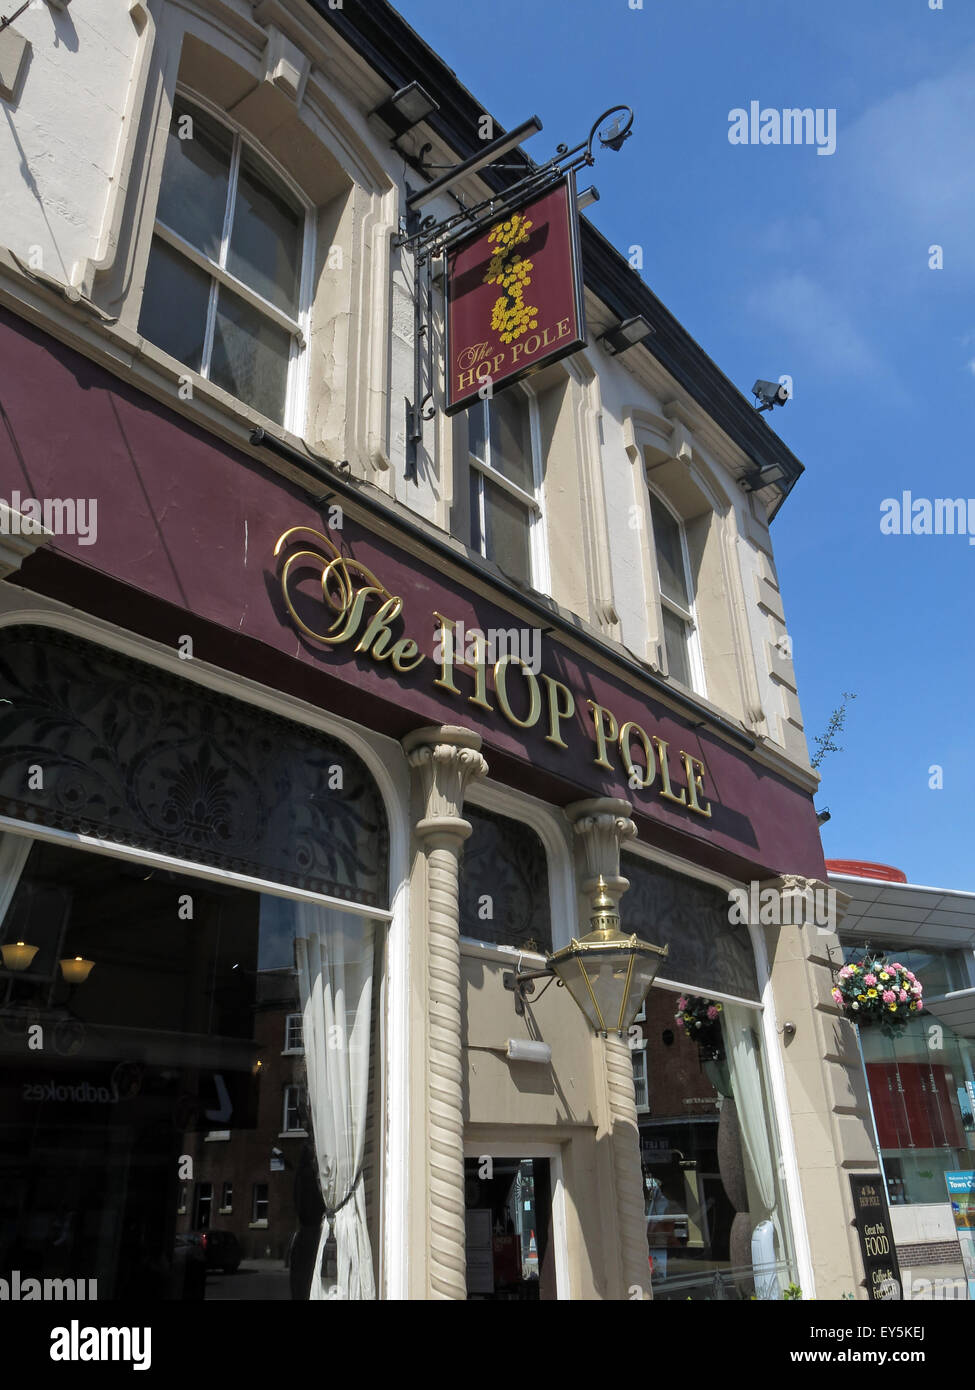 bar,public,house,sign,sun,entertainment,old,historic,Hoppole,the,hop,pole,beer,boozer,Cheshire,England,UK,WA1 1TS,WA11TS,traditional,traditional pub,music,karaoke,disco,freehouse,free house,free house,good,little,pub,trust,inns,inn,GoTonySmith,bus station,bus,station,Trust inns,hop pole 49,hoppole49,pole49,Buy Pictures of,Buy Images Of